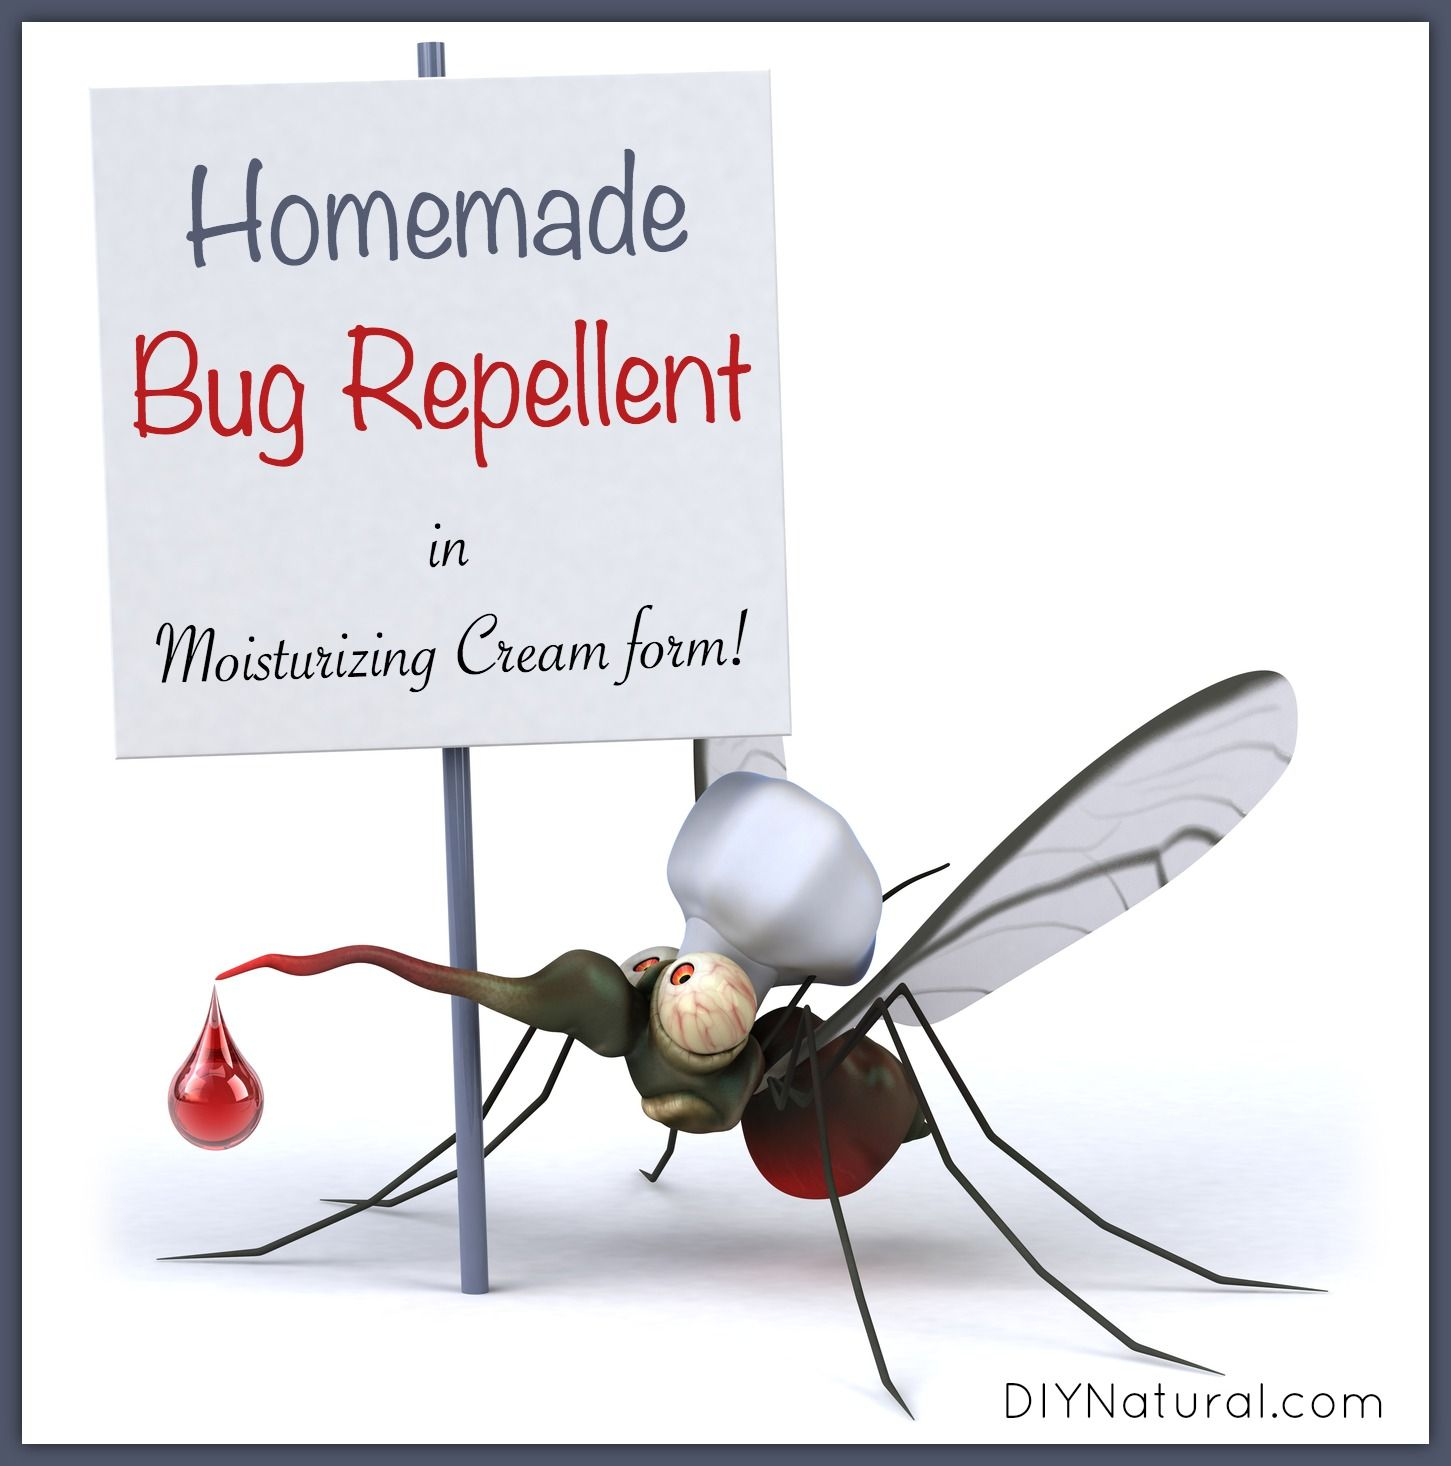 Homemade Mosquito Repellent in A Nice Moisturizing Cream | Homemade ... for Homemade Mosquito Killer  29jwn